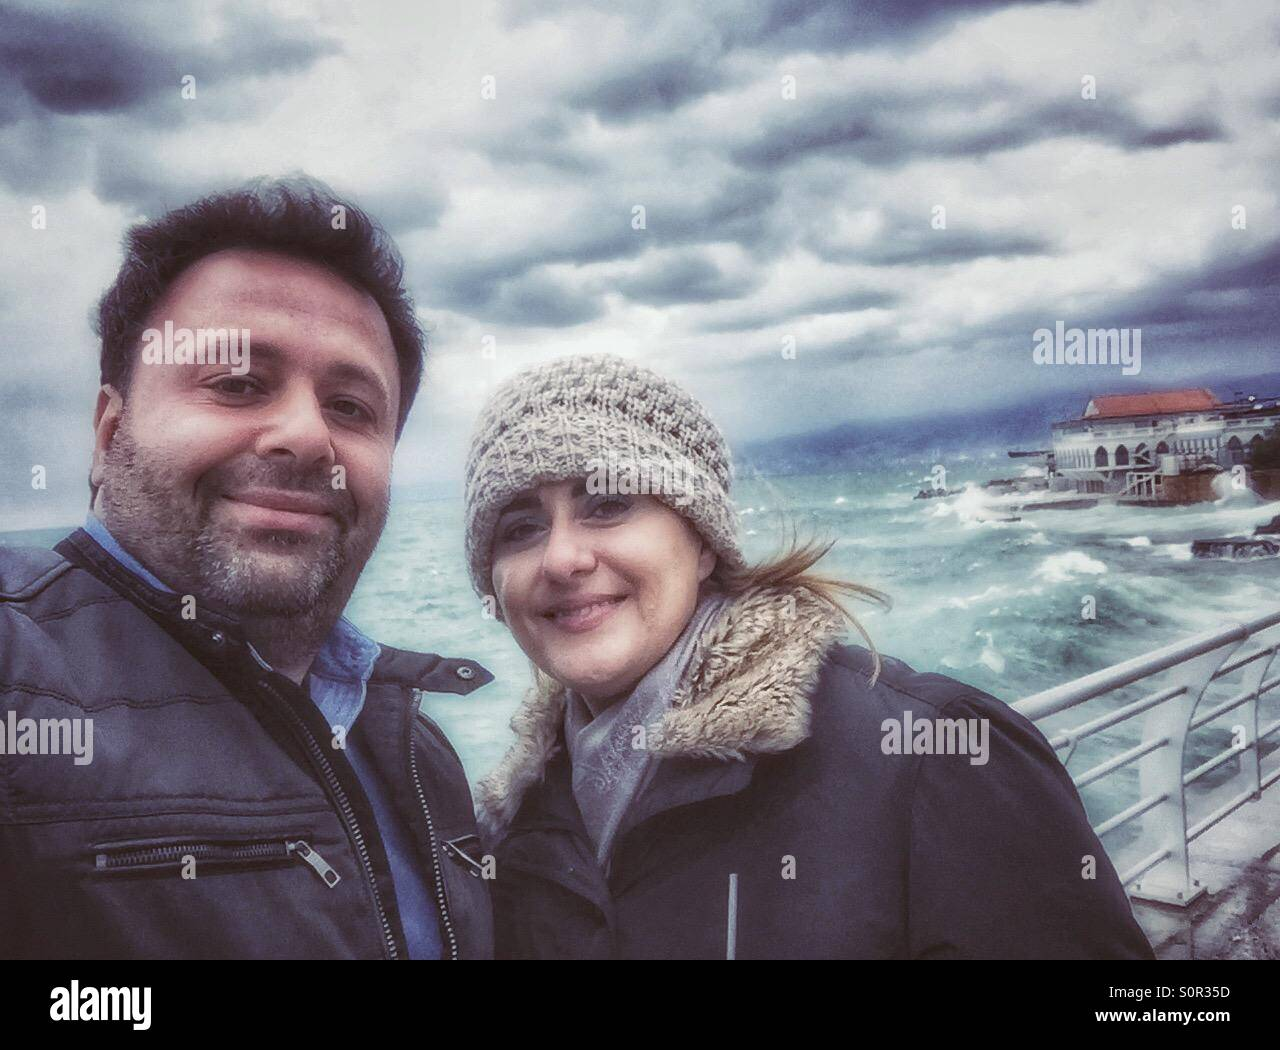 Yong lady ,blonde,coffee,cup of coffee on sea cost,windy day,husseinelsaneh,Mediterranean,crom boarder waves,woman,women.,men,couple,man - Stock Image